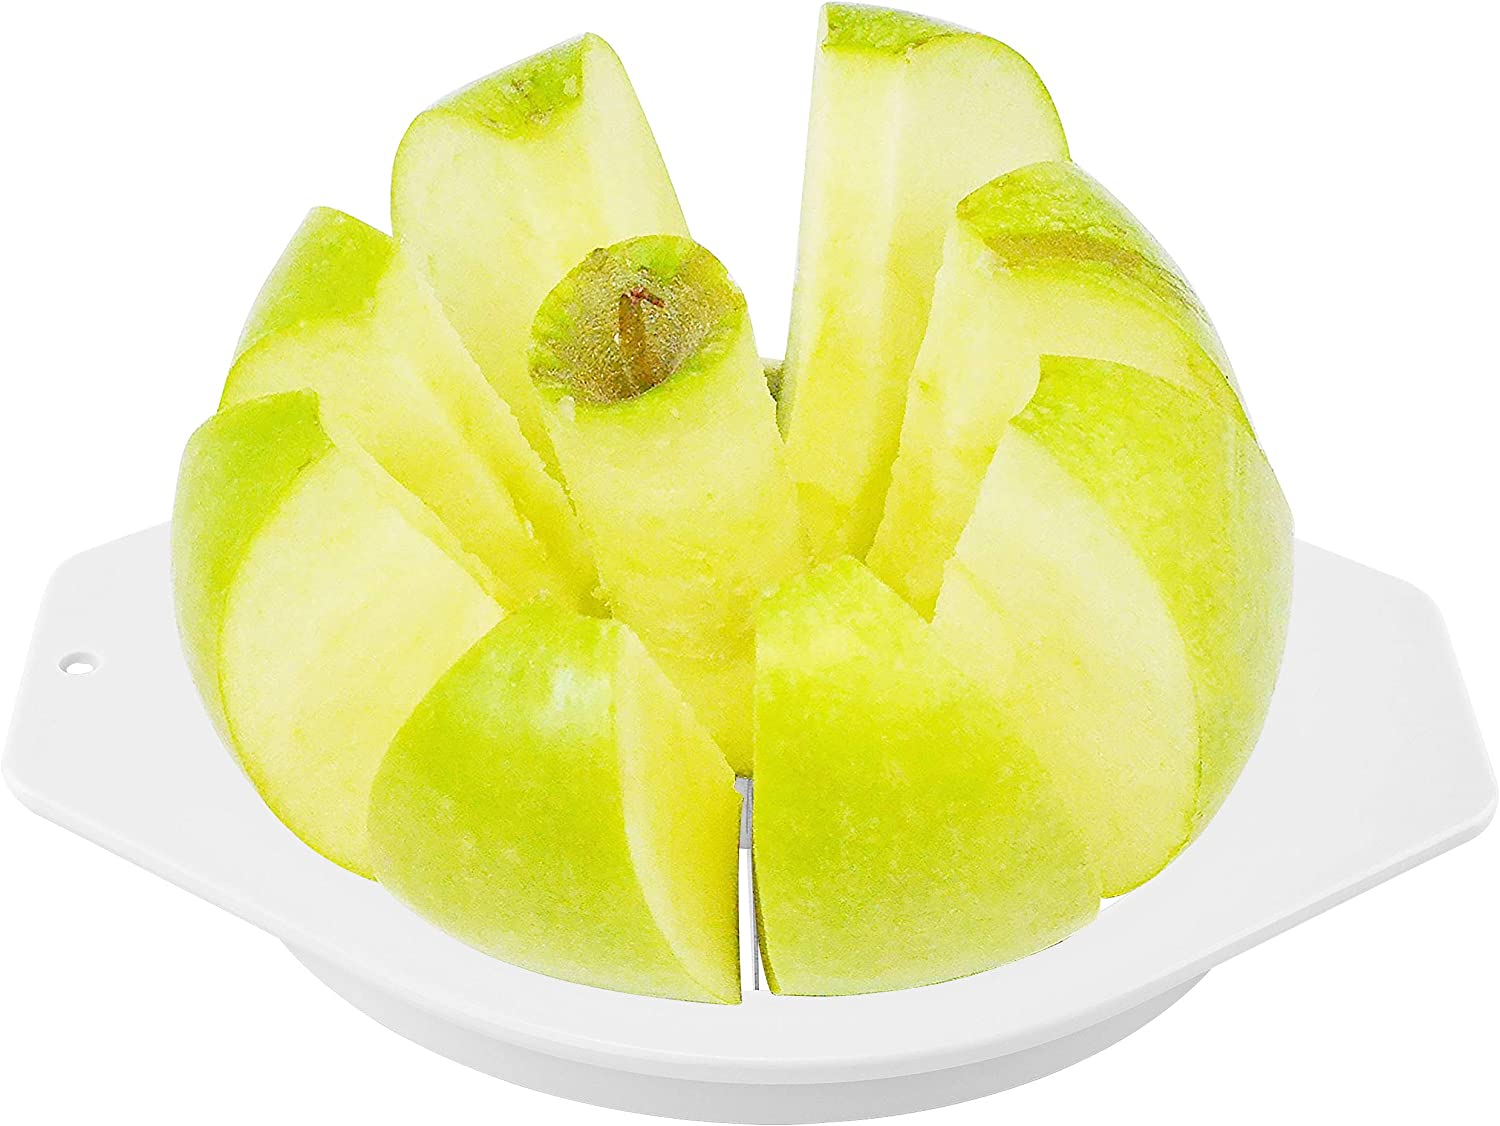 Apple Pear Fruit Slicer Corer Wedger Kitchen Utensil Gadget Tool